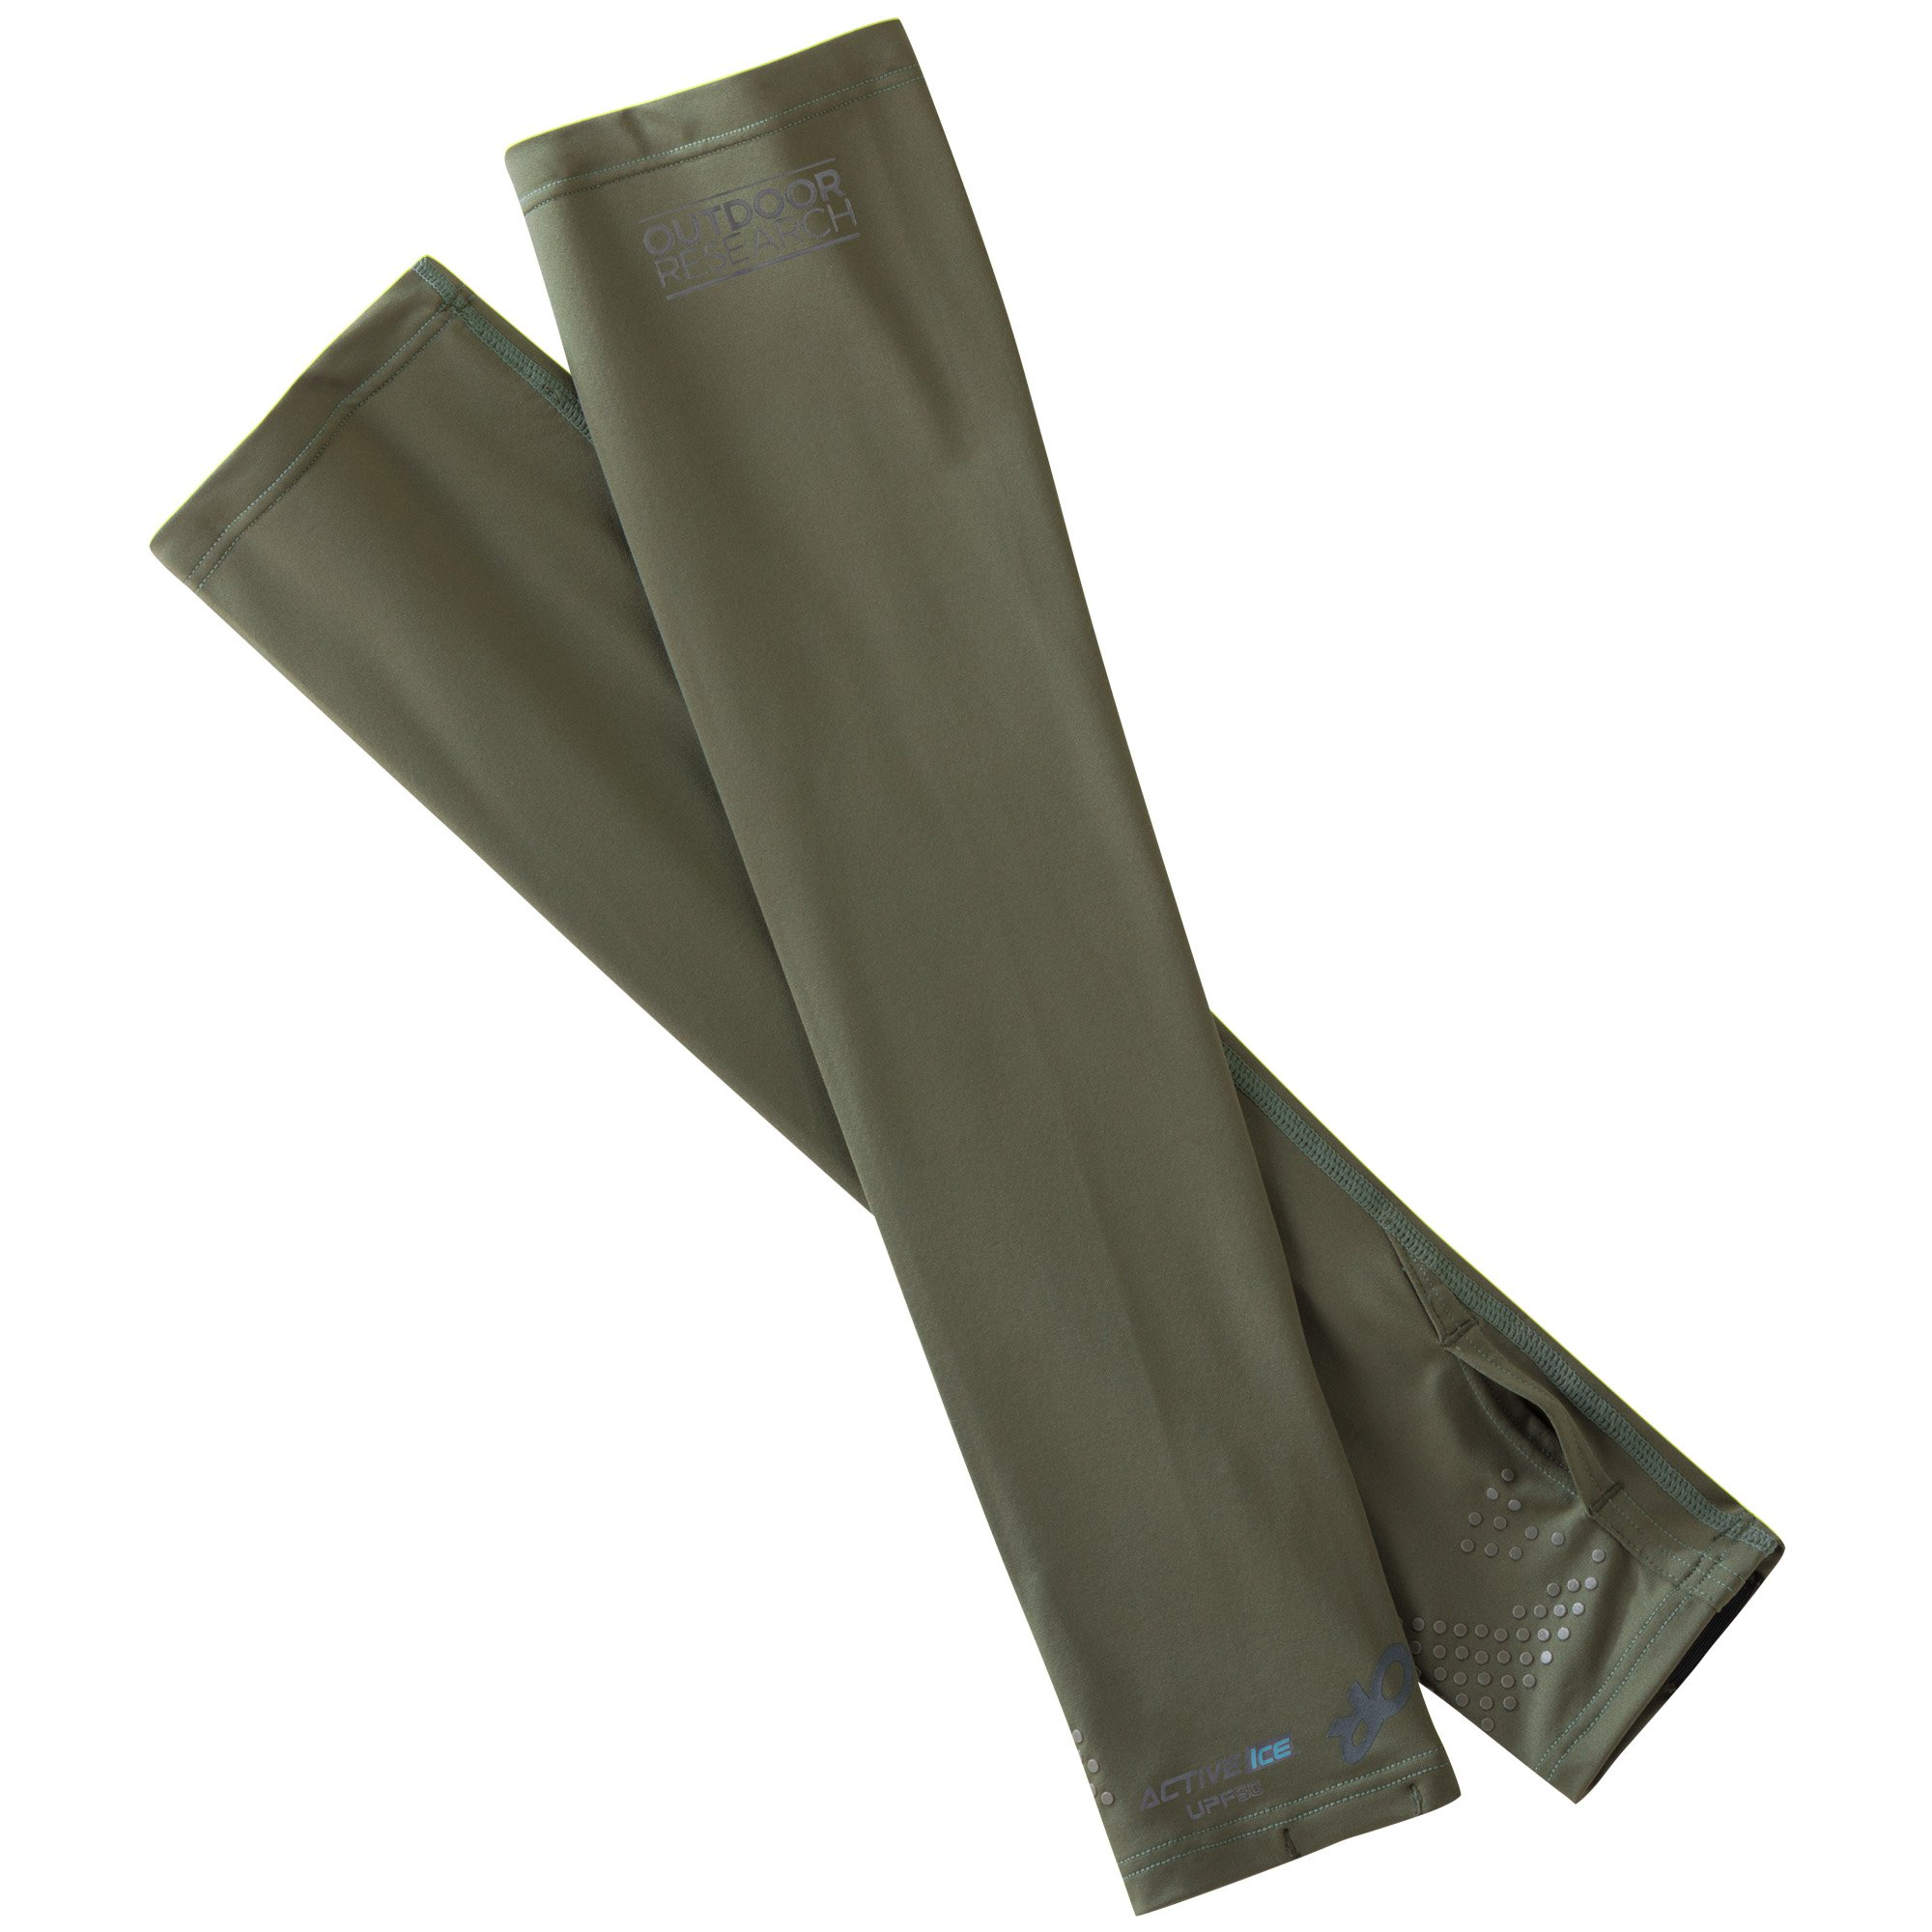 Outdoor Research Active Ice Sun Sleeves, Fatigue, Large/X-Large by Outdoor Research